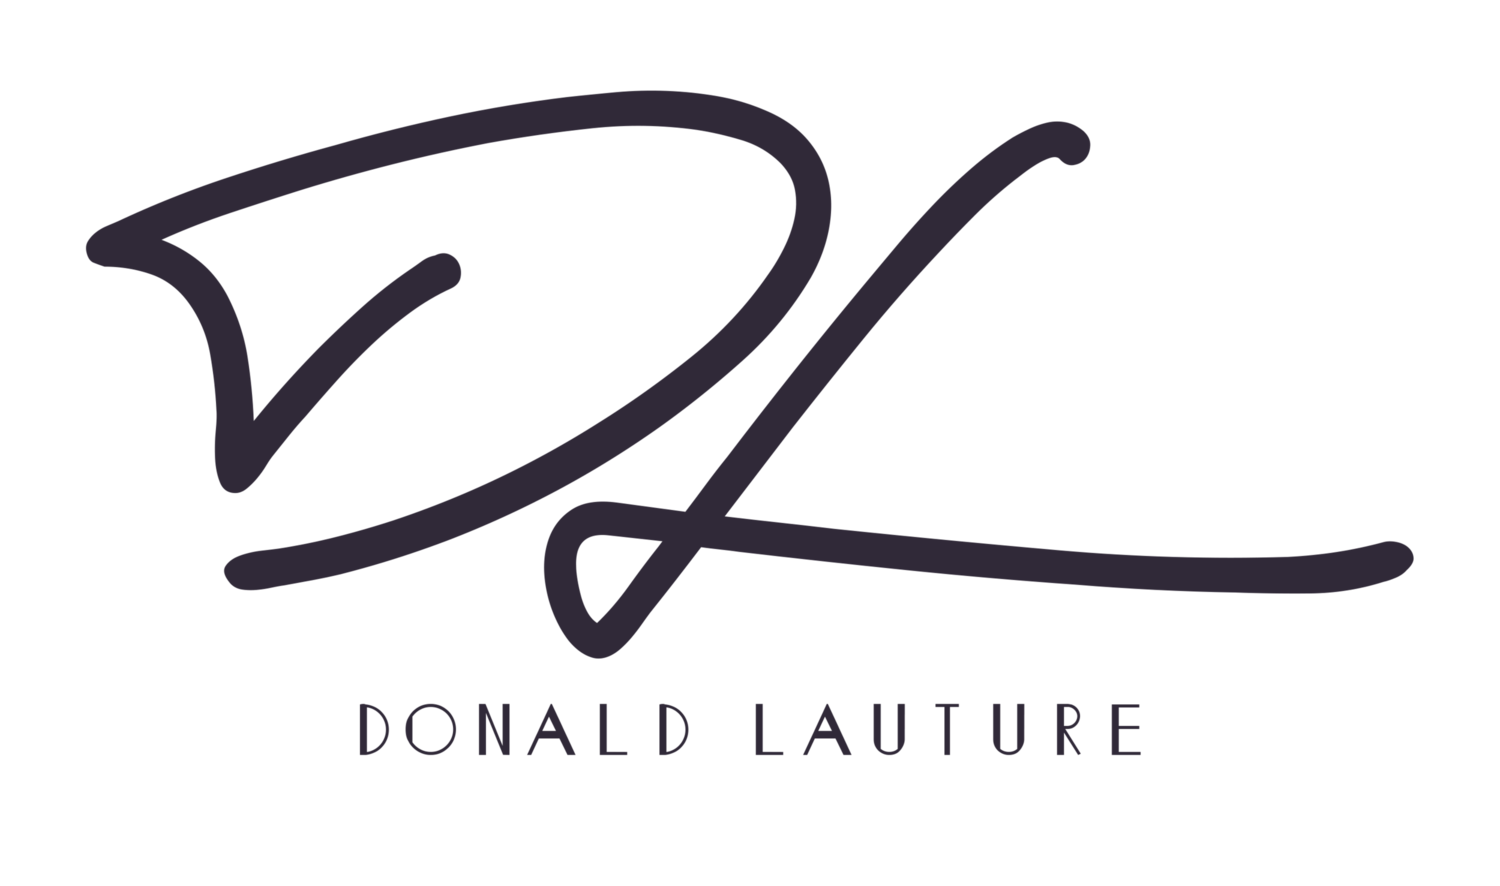 DONALD LAUTURE